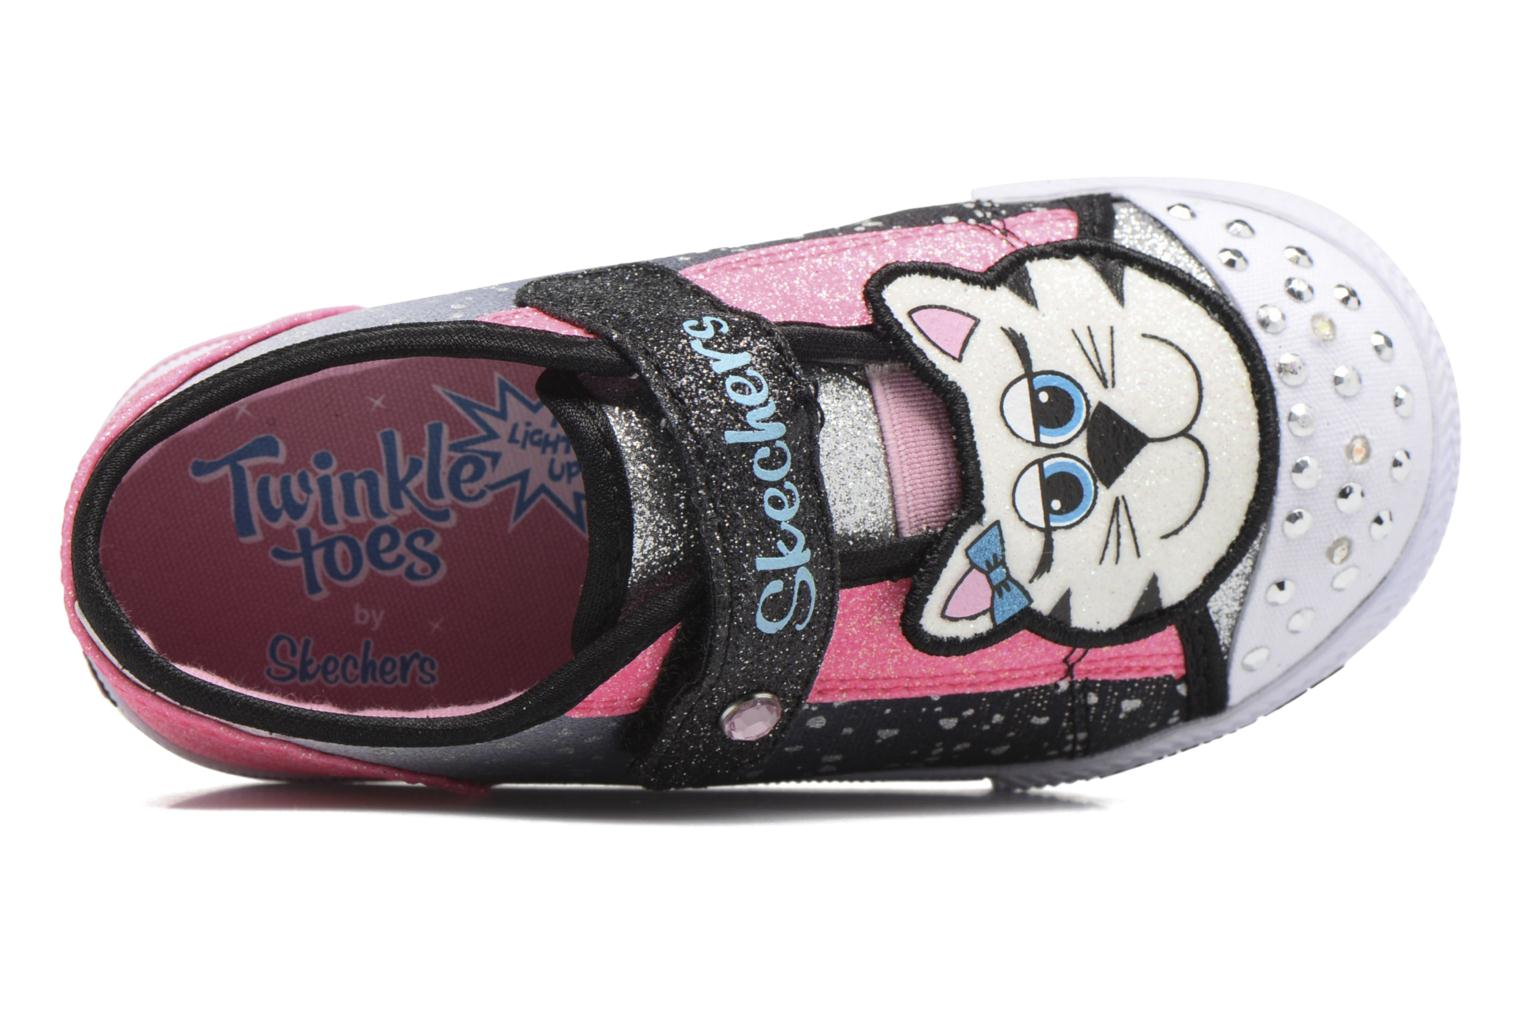 Shuffles Play Dates Black/pink